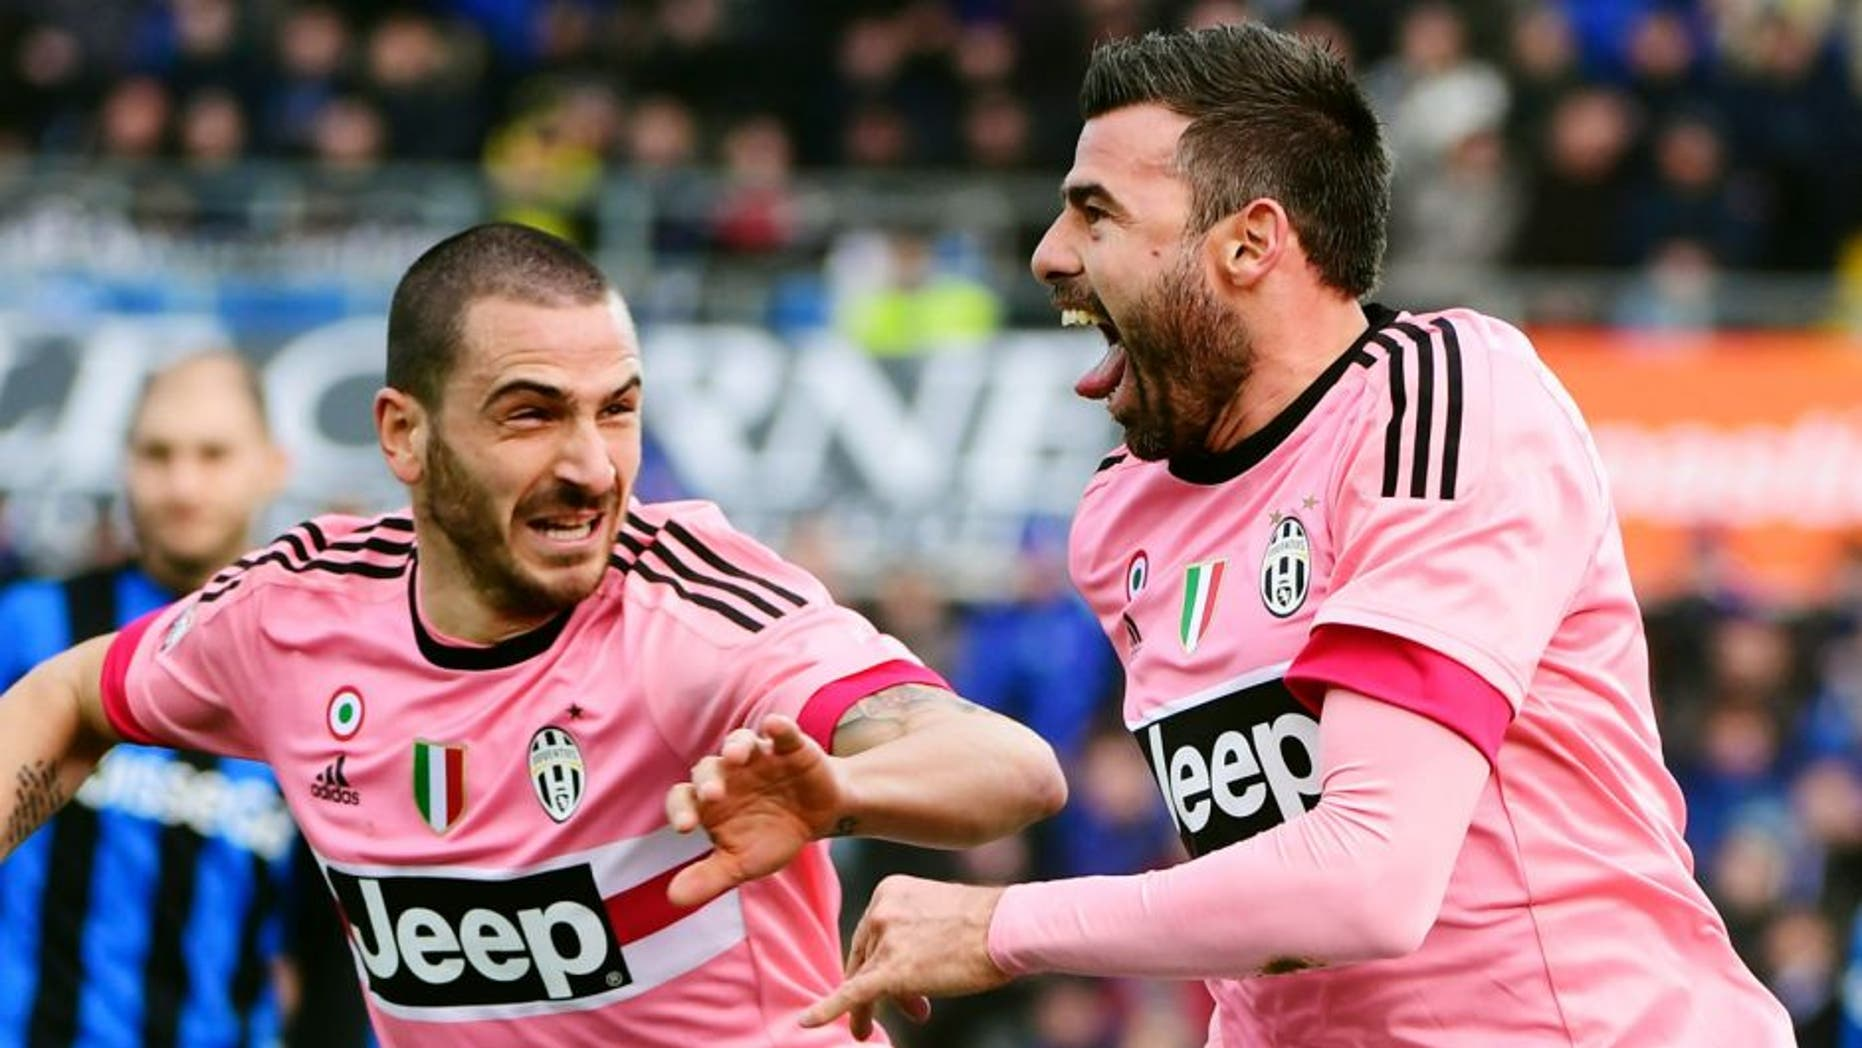 Juventus' Italian defender Andrea Barzagli (R) celebrates with Juventus' Italian defender Leonardo Bonucci after scoring a goal during the Italian Serie A football match between Atalanta and Juventus on March 6, 2016 at the Azzuri Stadium in Bergamo. / AFP / OLIVIER MORIN (Photo credit should read OLIVIER MORIN/AFP/Getty Images)